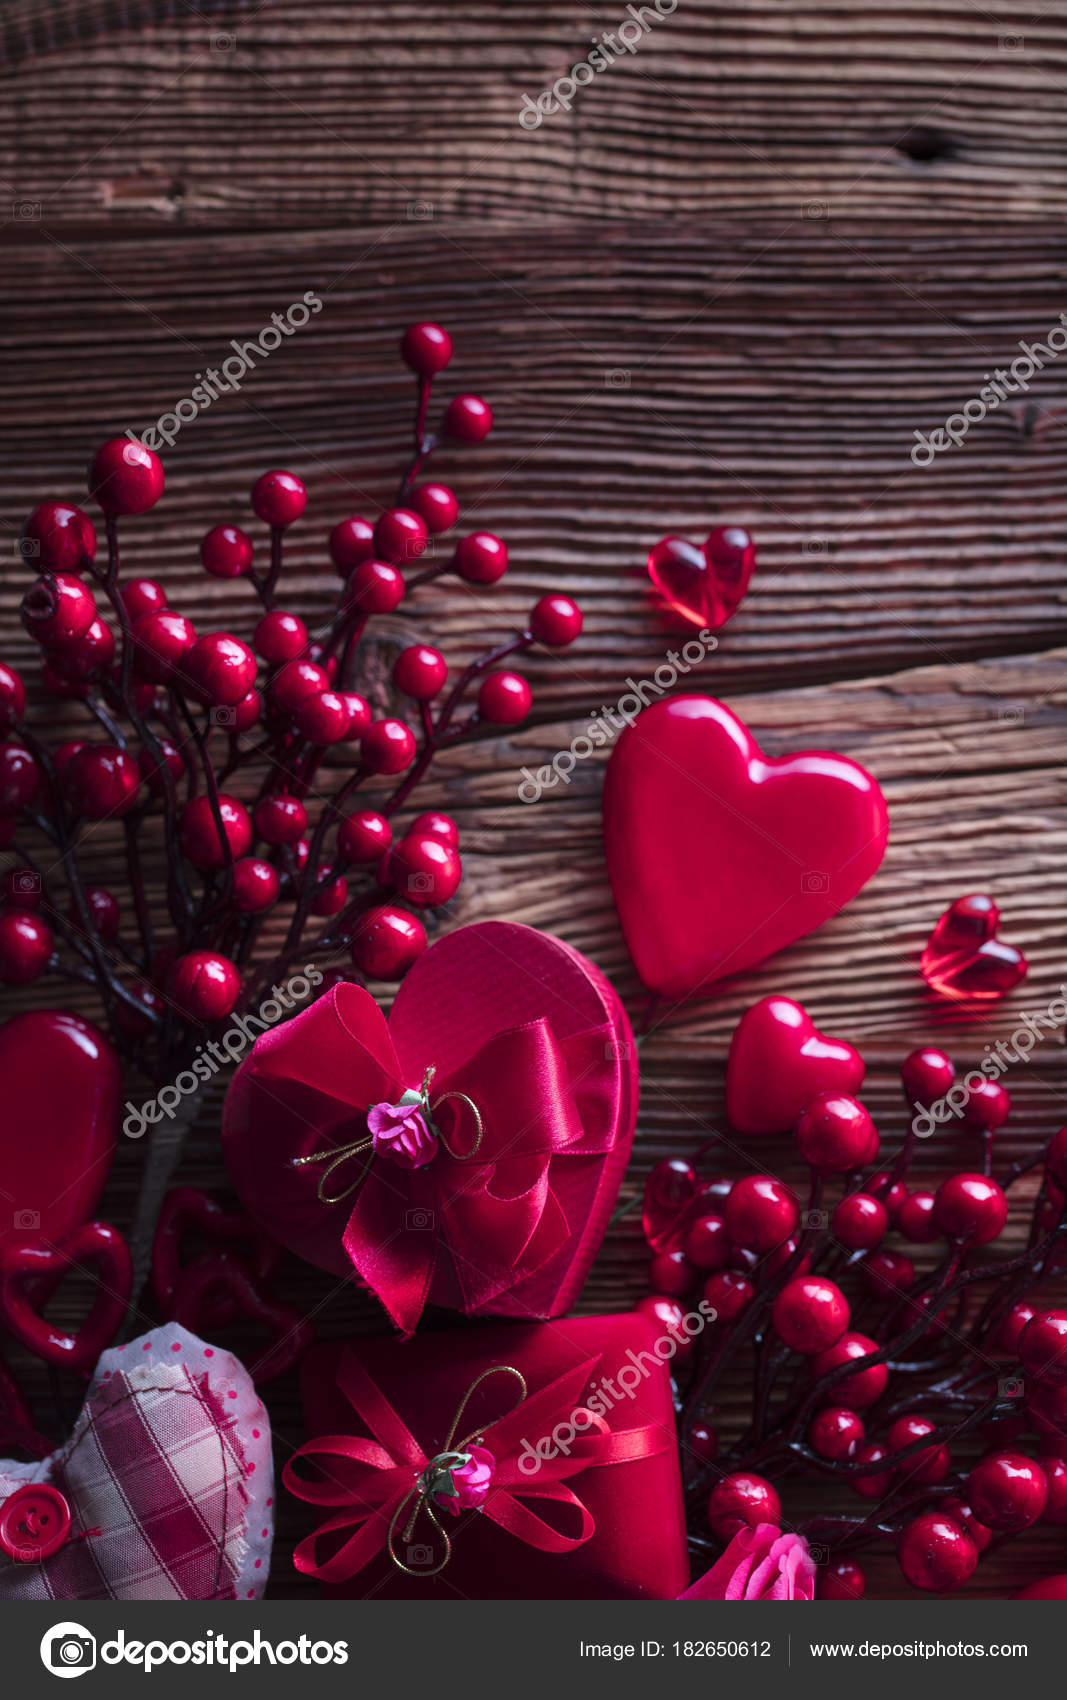 Valentines Day Background Hearts Roses Gifts Romantic Decorations